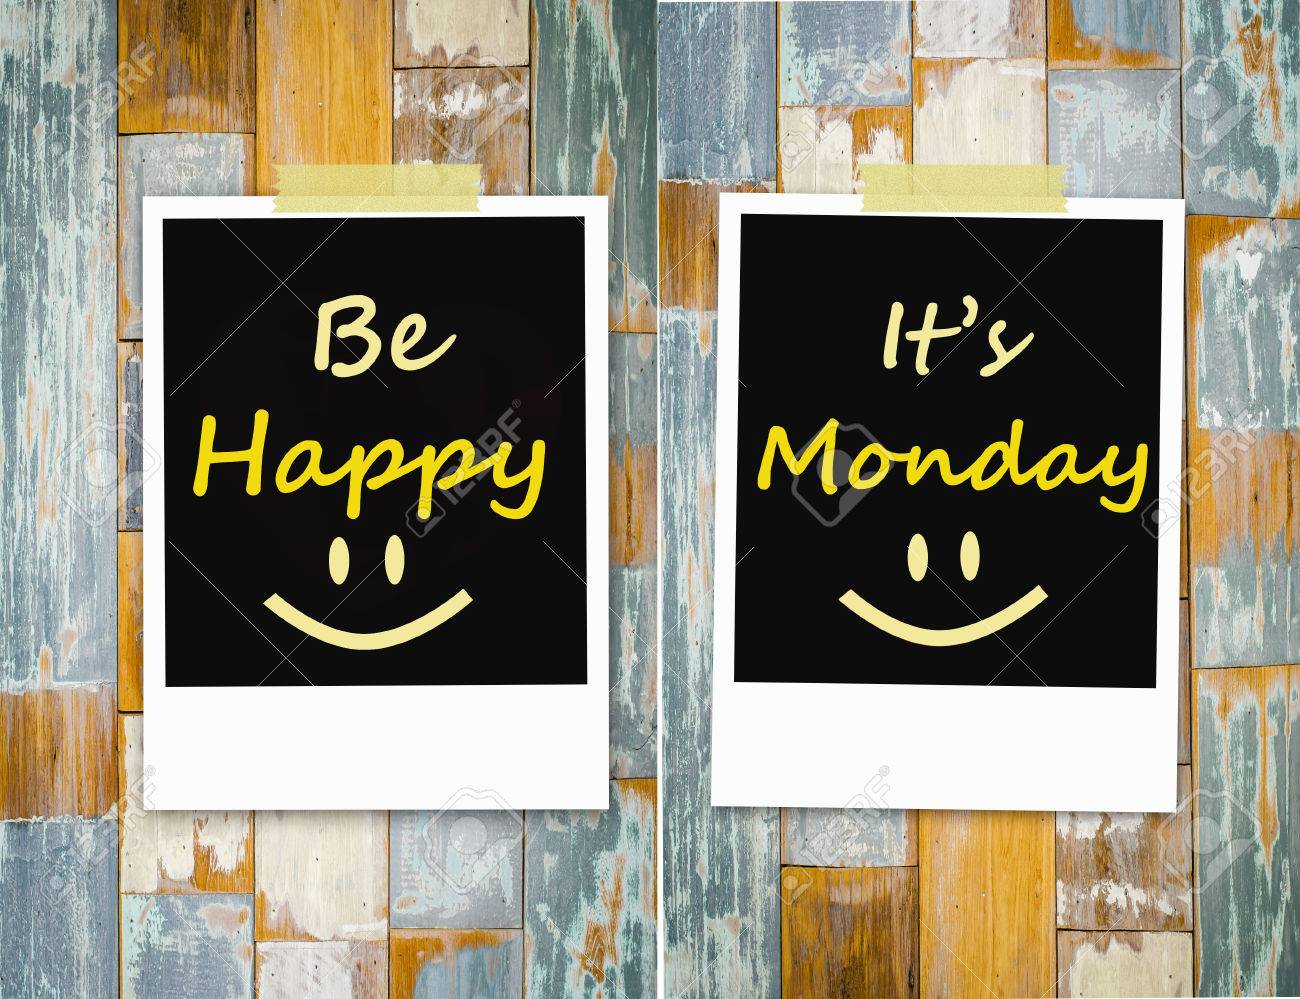 Be happy , It s Monday  Message on wall Stock Photo - 30946697